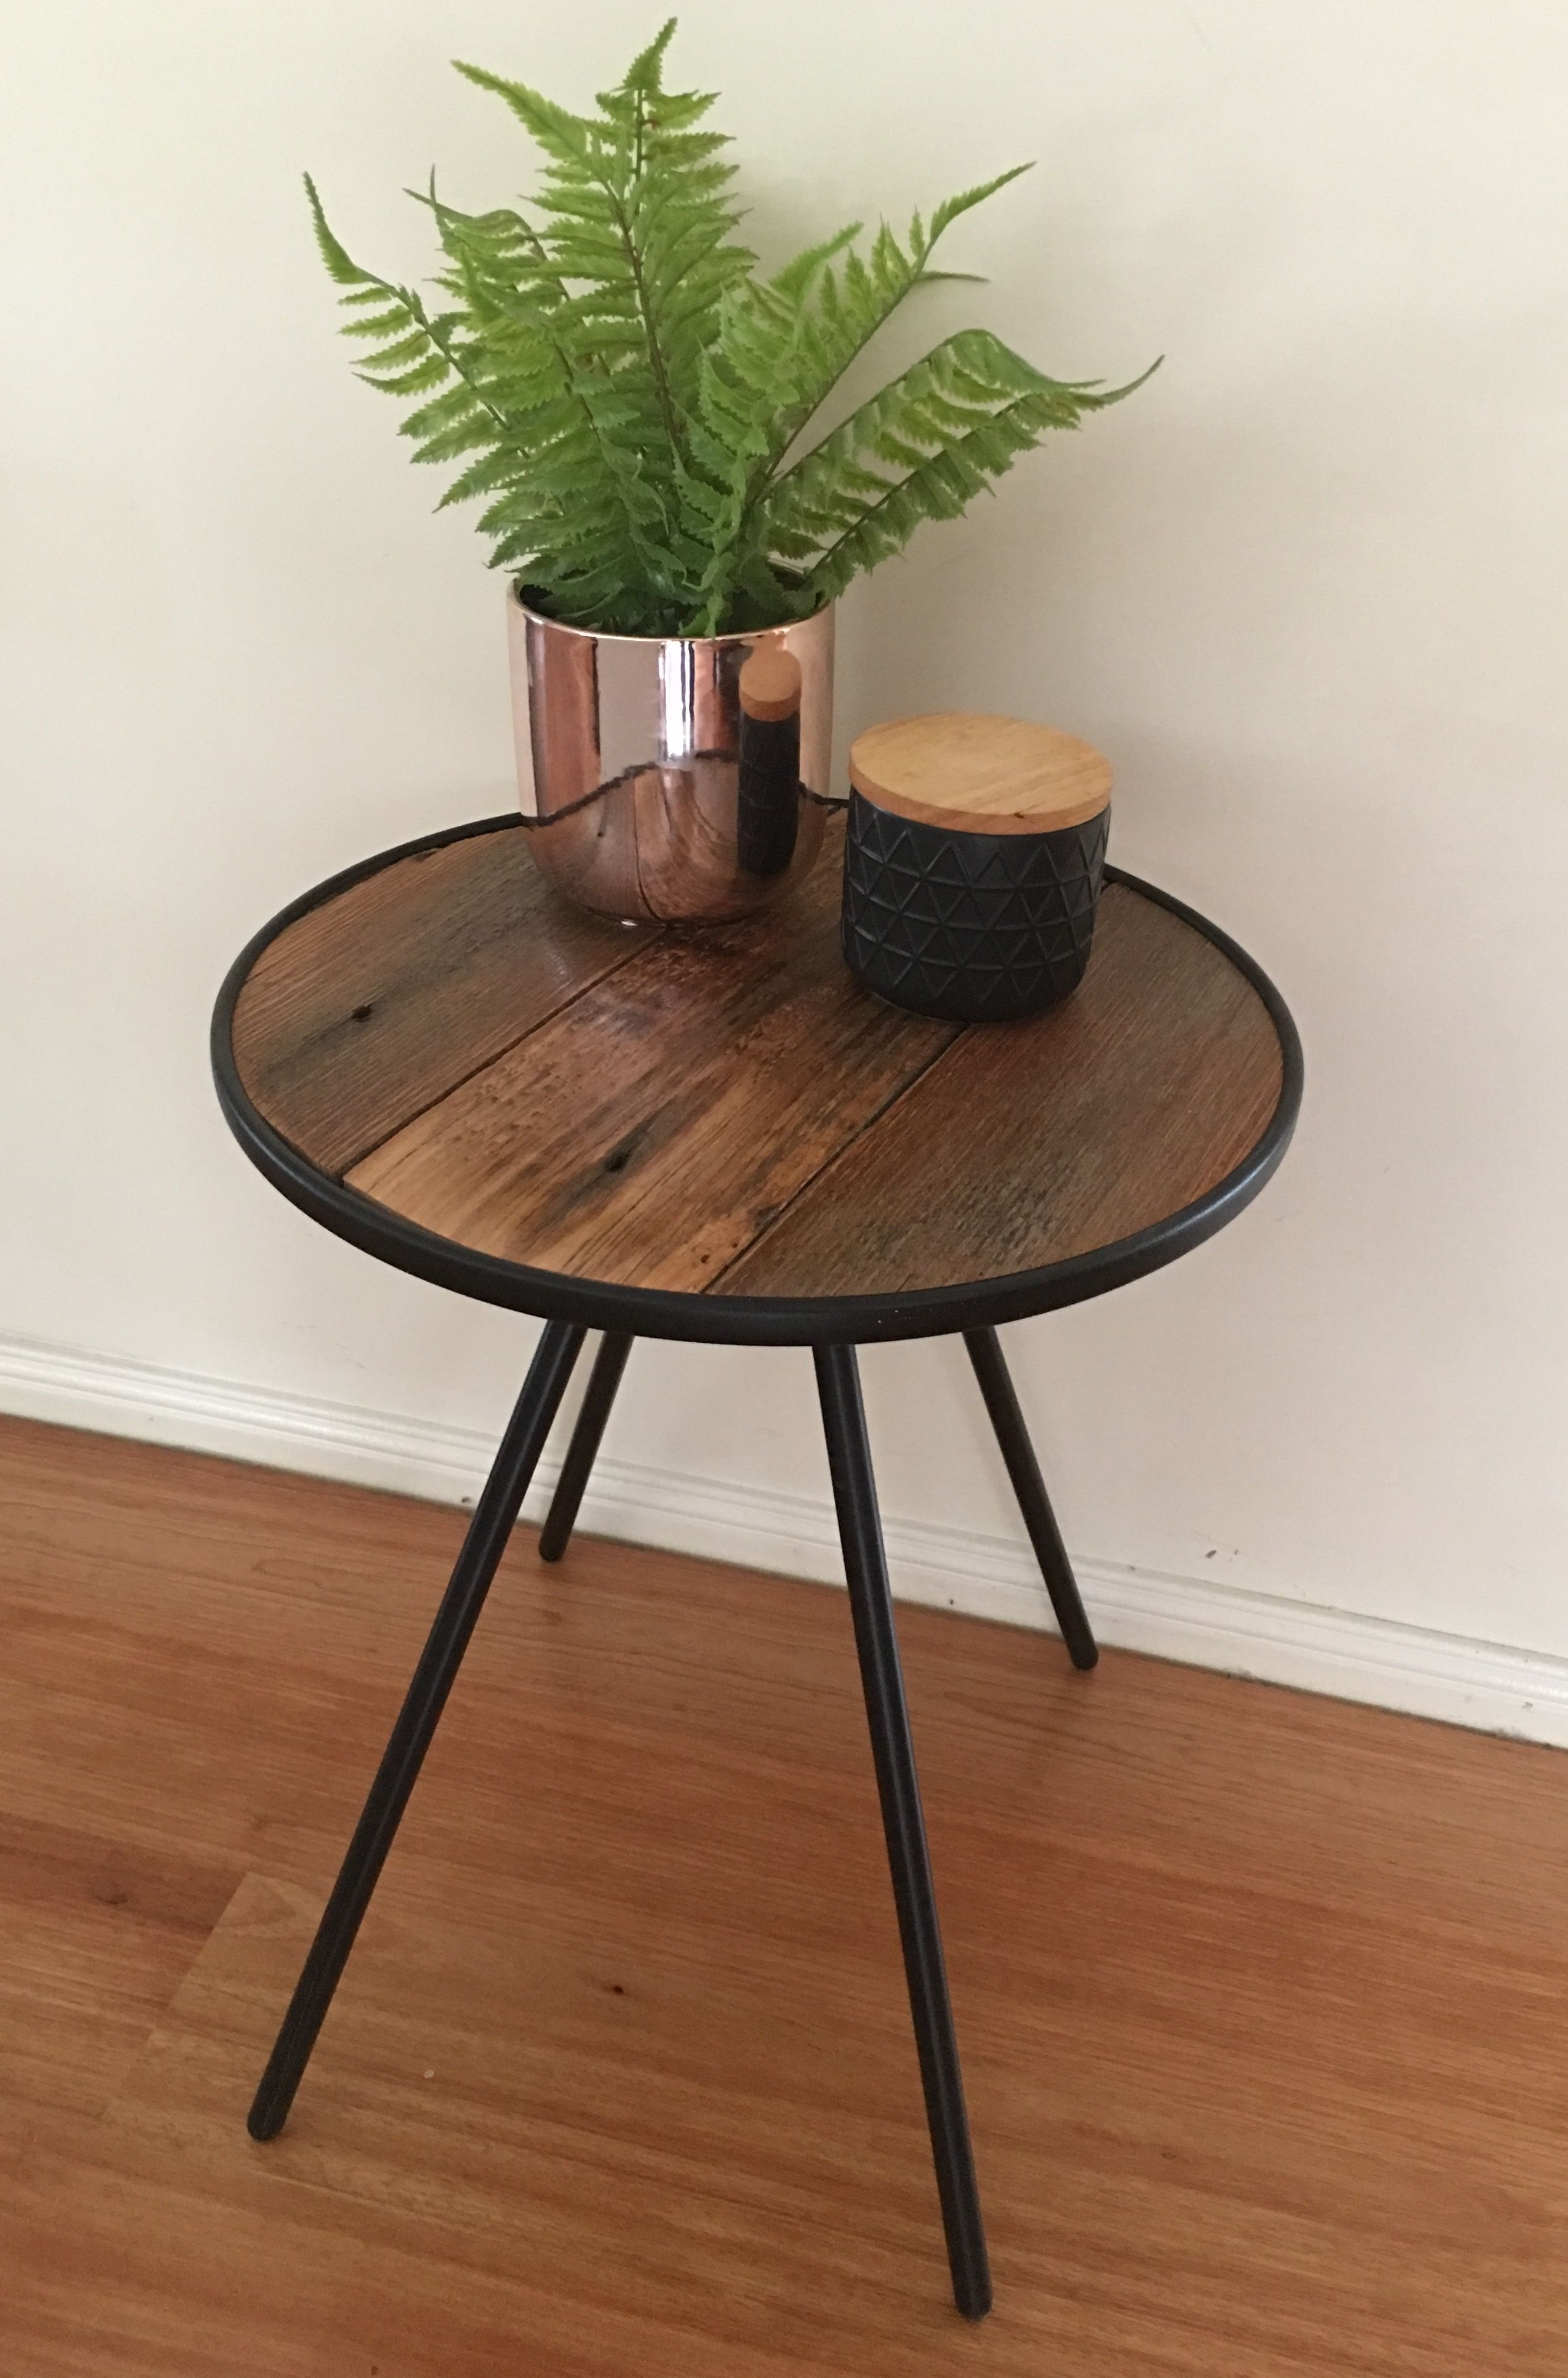 Recycled Timber Industrial Round Side Table Made By Recycledtimberfurnitureozcom